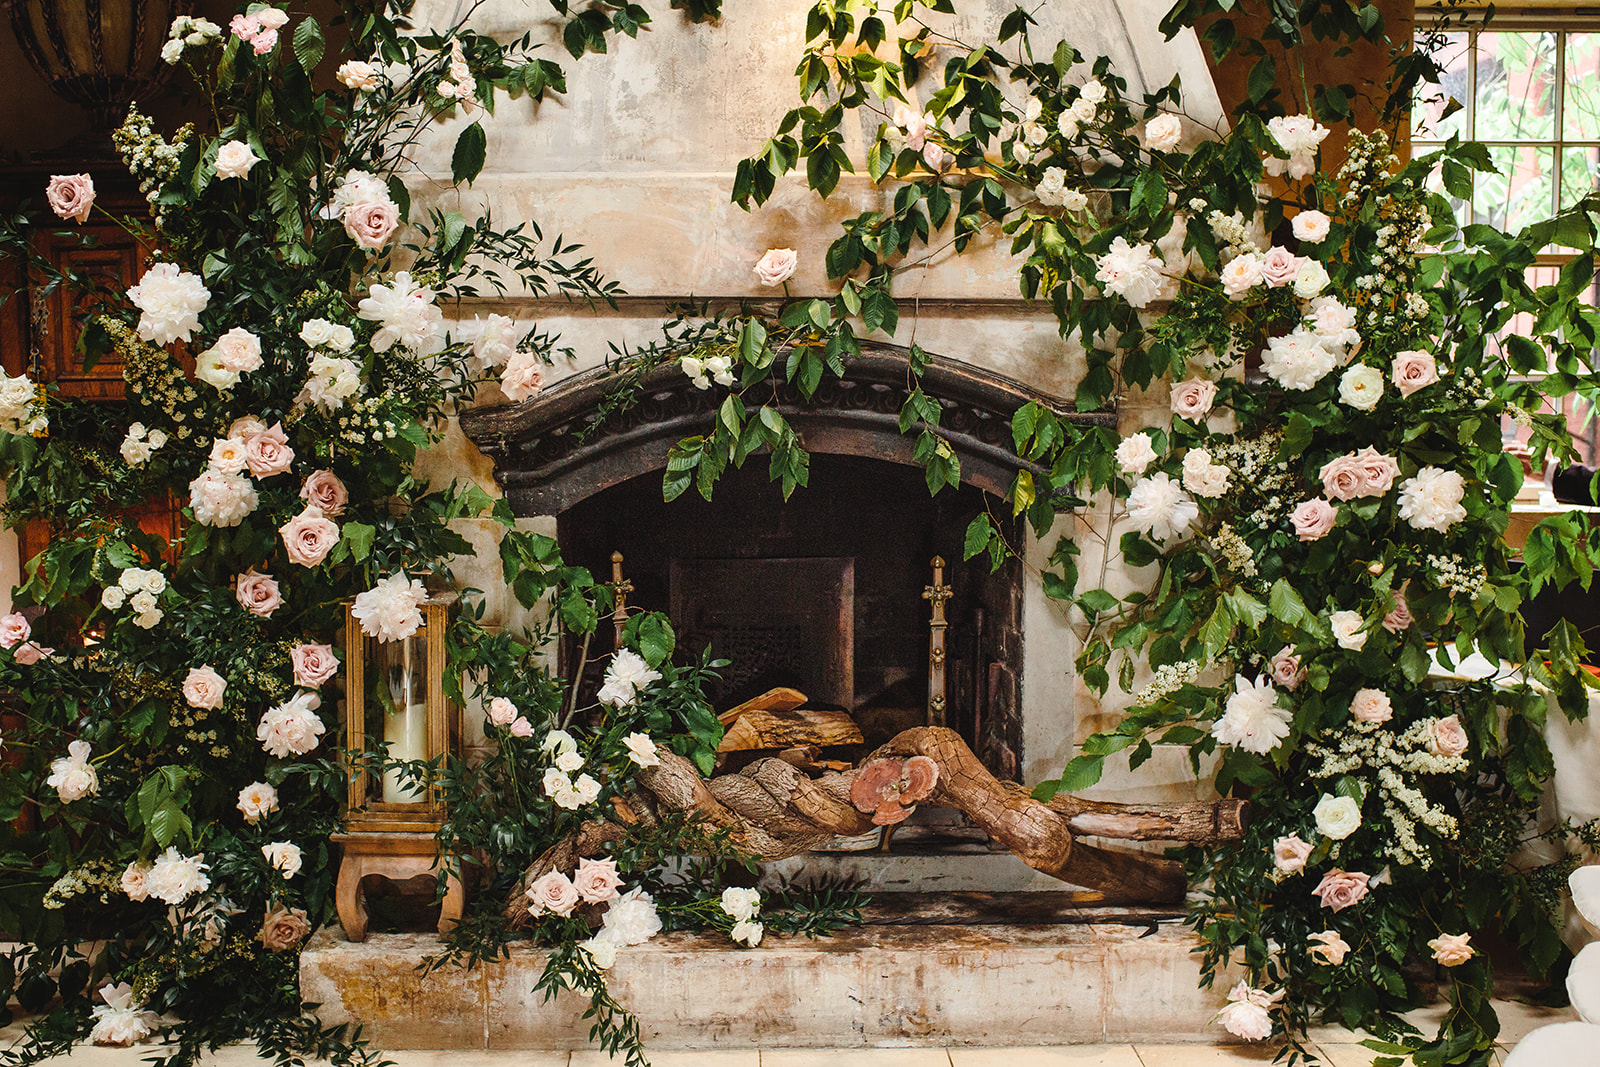 fireplace-floral-arrangement-pink-bowtie-nyc-ct.jpg